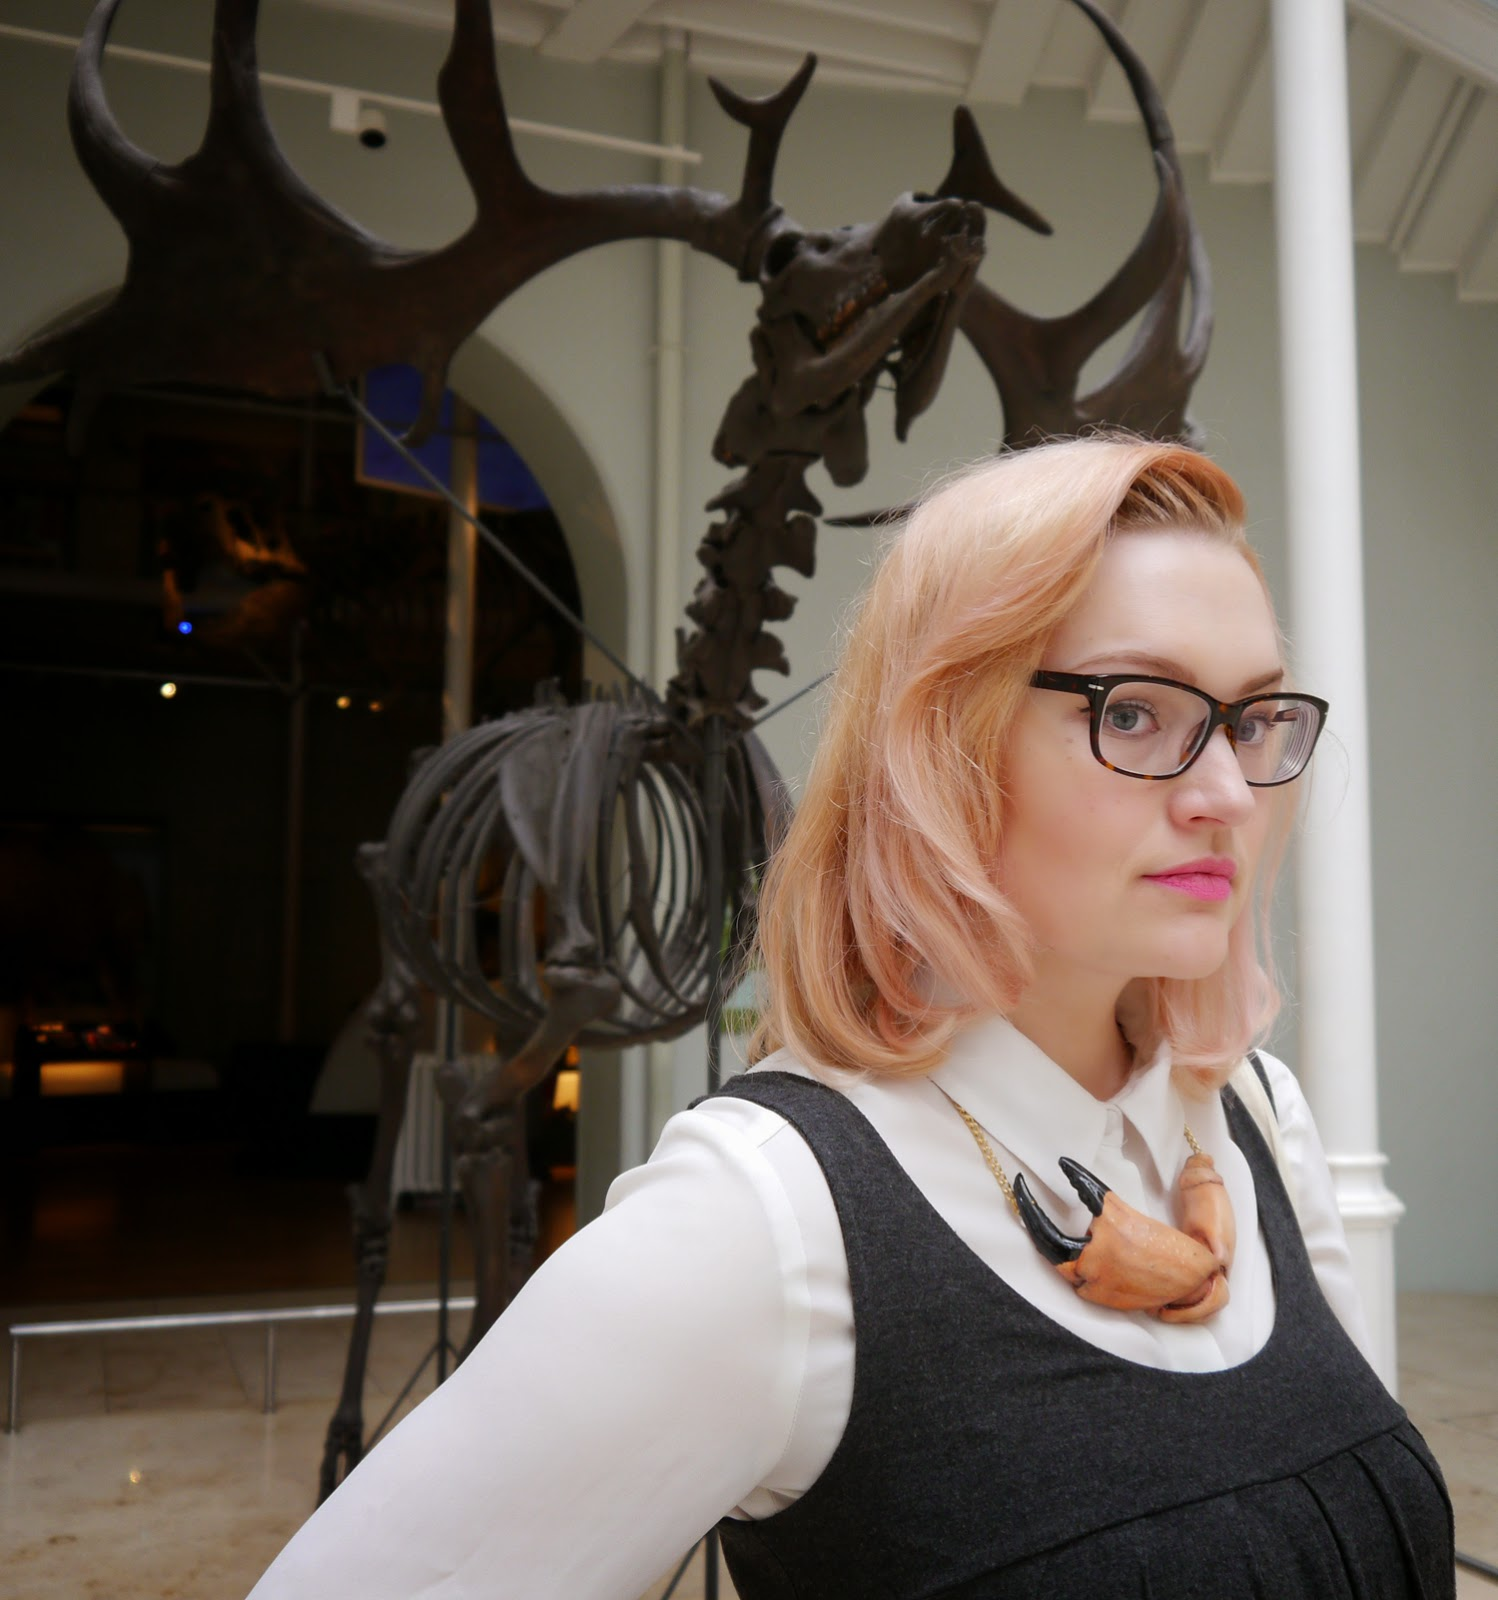 Kimberley wears, festival, stylist, scotland, model, museum, animals, edinburgh, scottish bloggers, fashion, pincer crab necklace, pink hair, pastel hair, retro glasses, how to, peach, pastel, 1950s hair, museum photoshoot